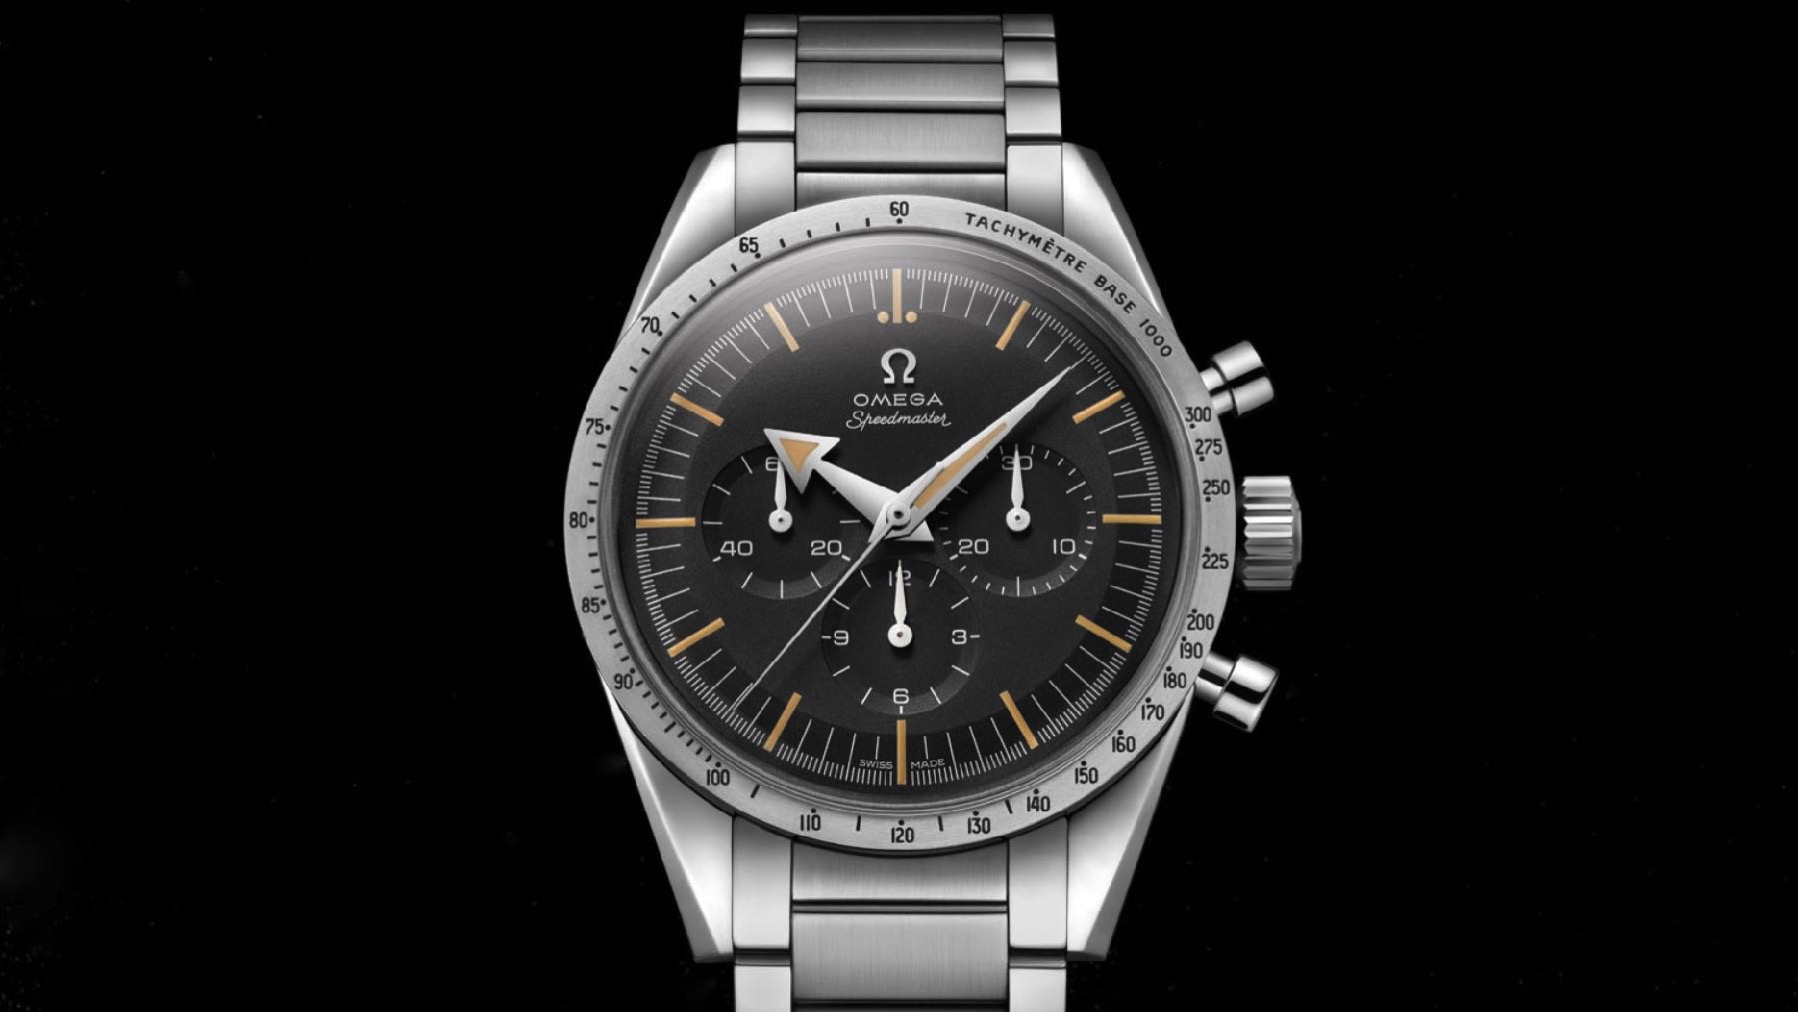 02 OMEGA 1957 Trilogy Limit Edition Speedmaster